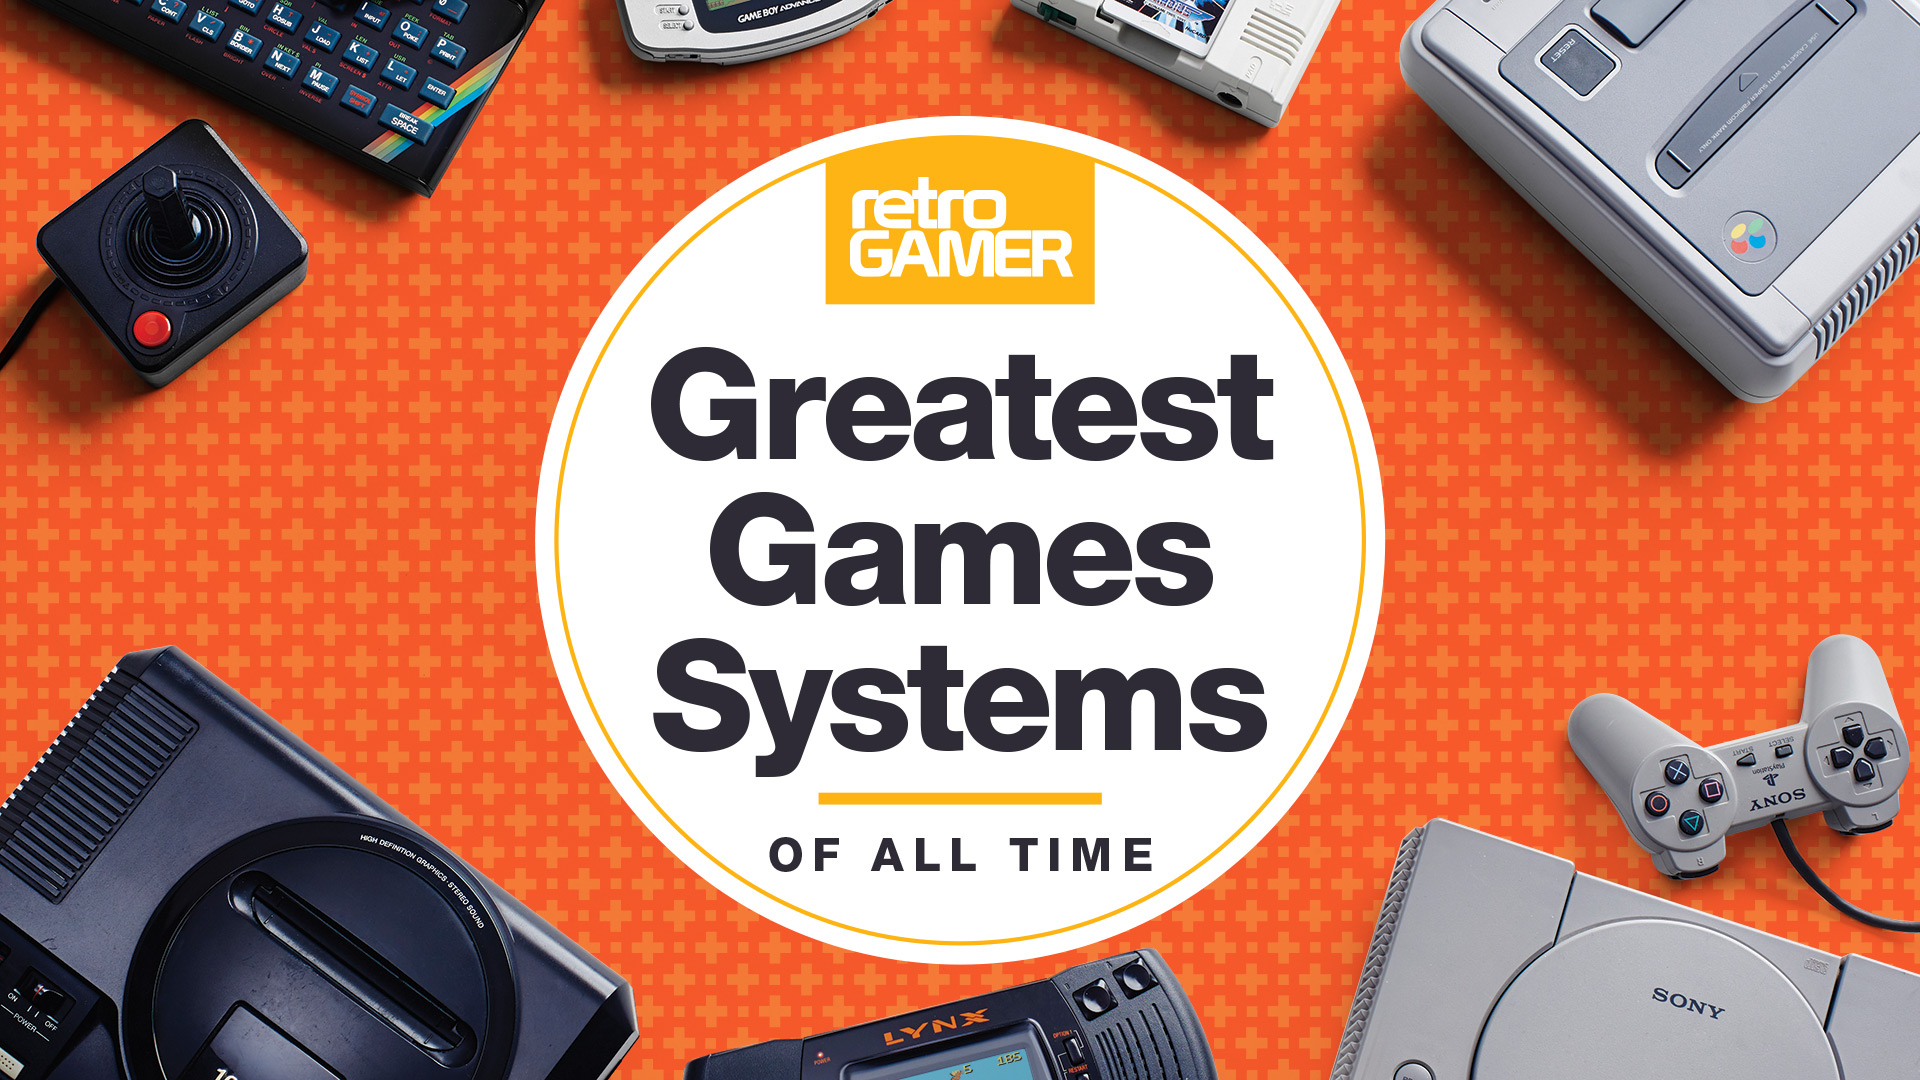 The 30 best video game consoles and systems of all time